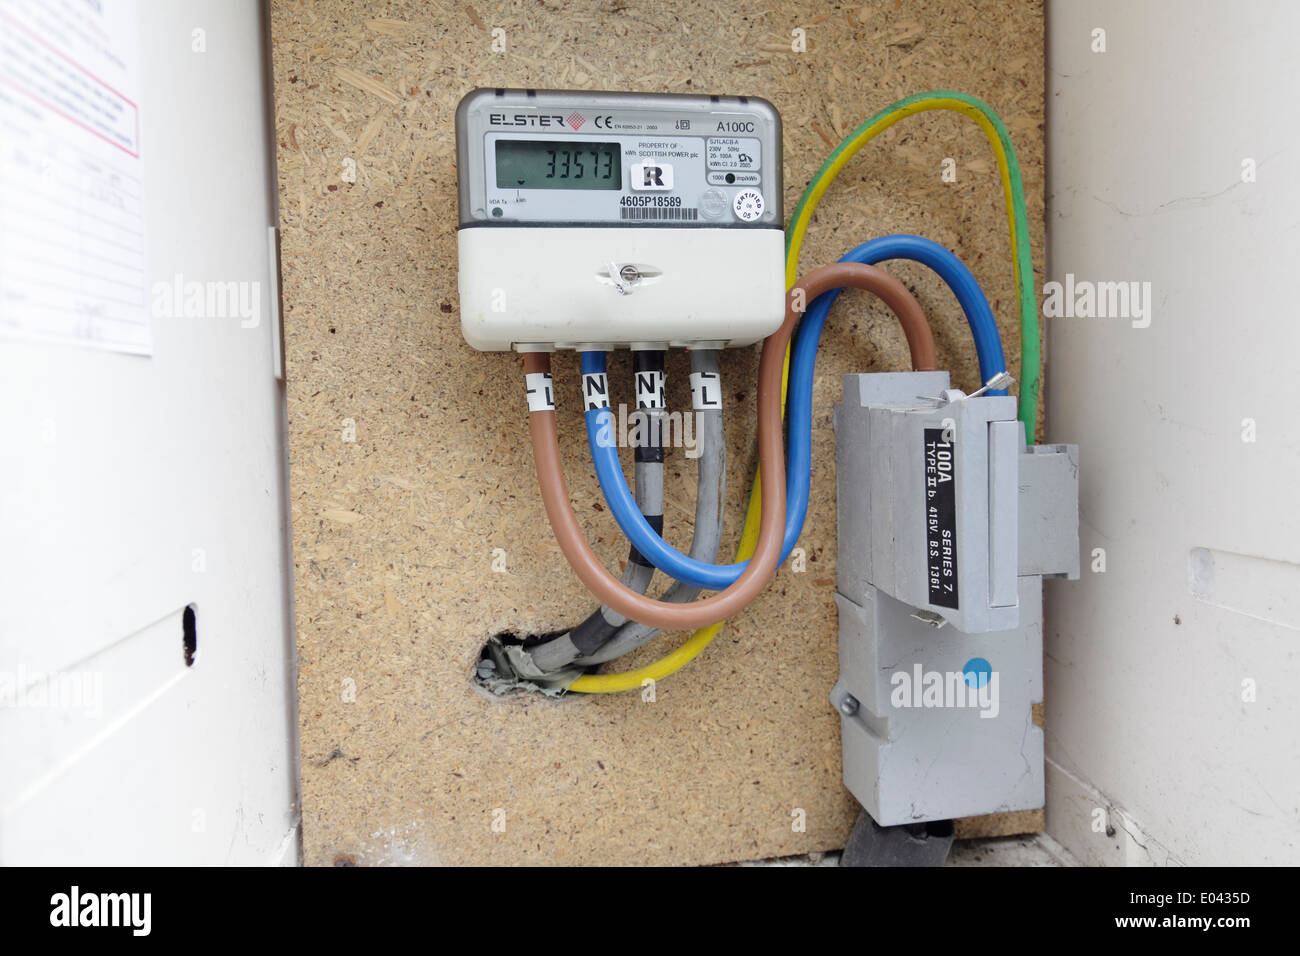 Electric Meter Box High Resolution Stock Photography and Images - AlamyAlamy